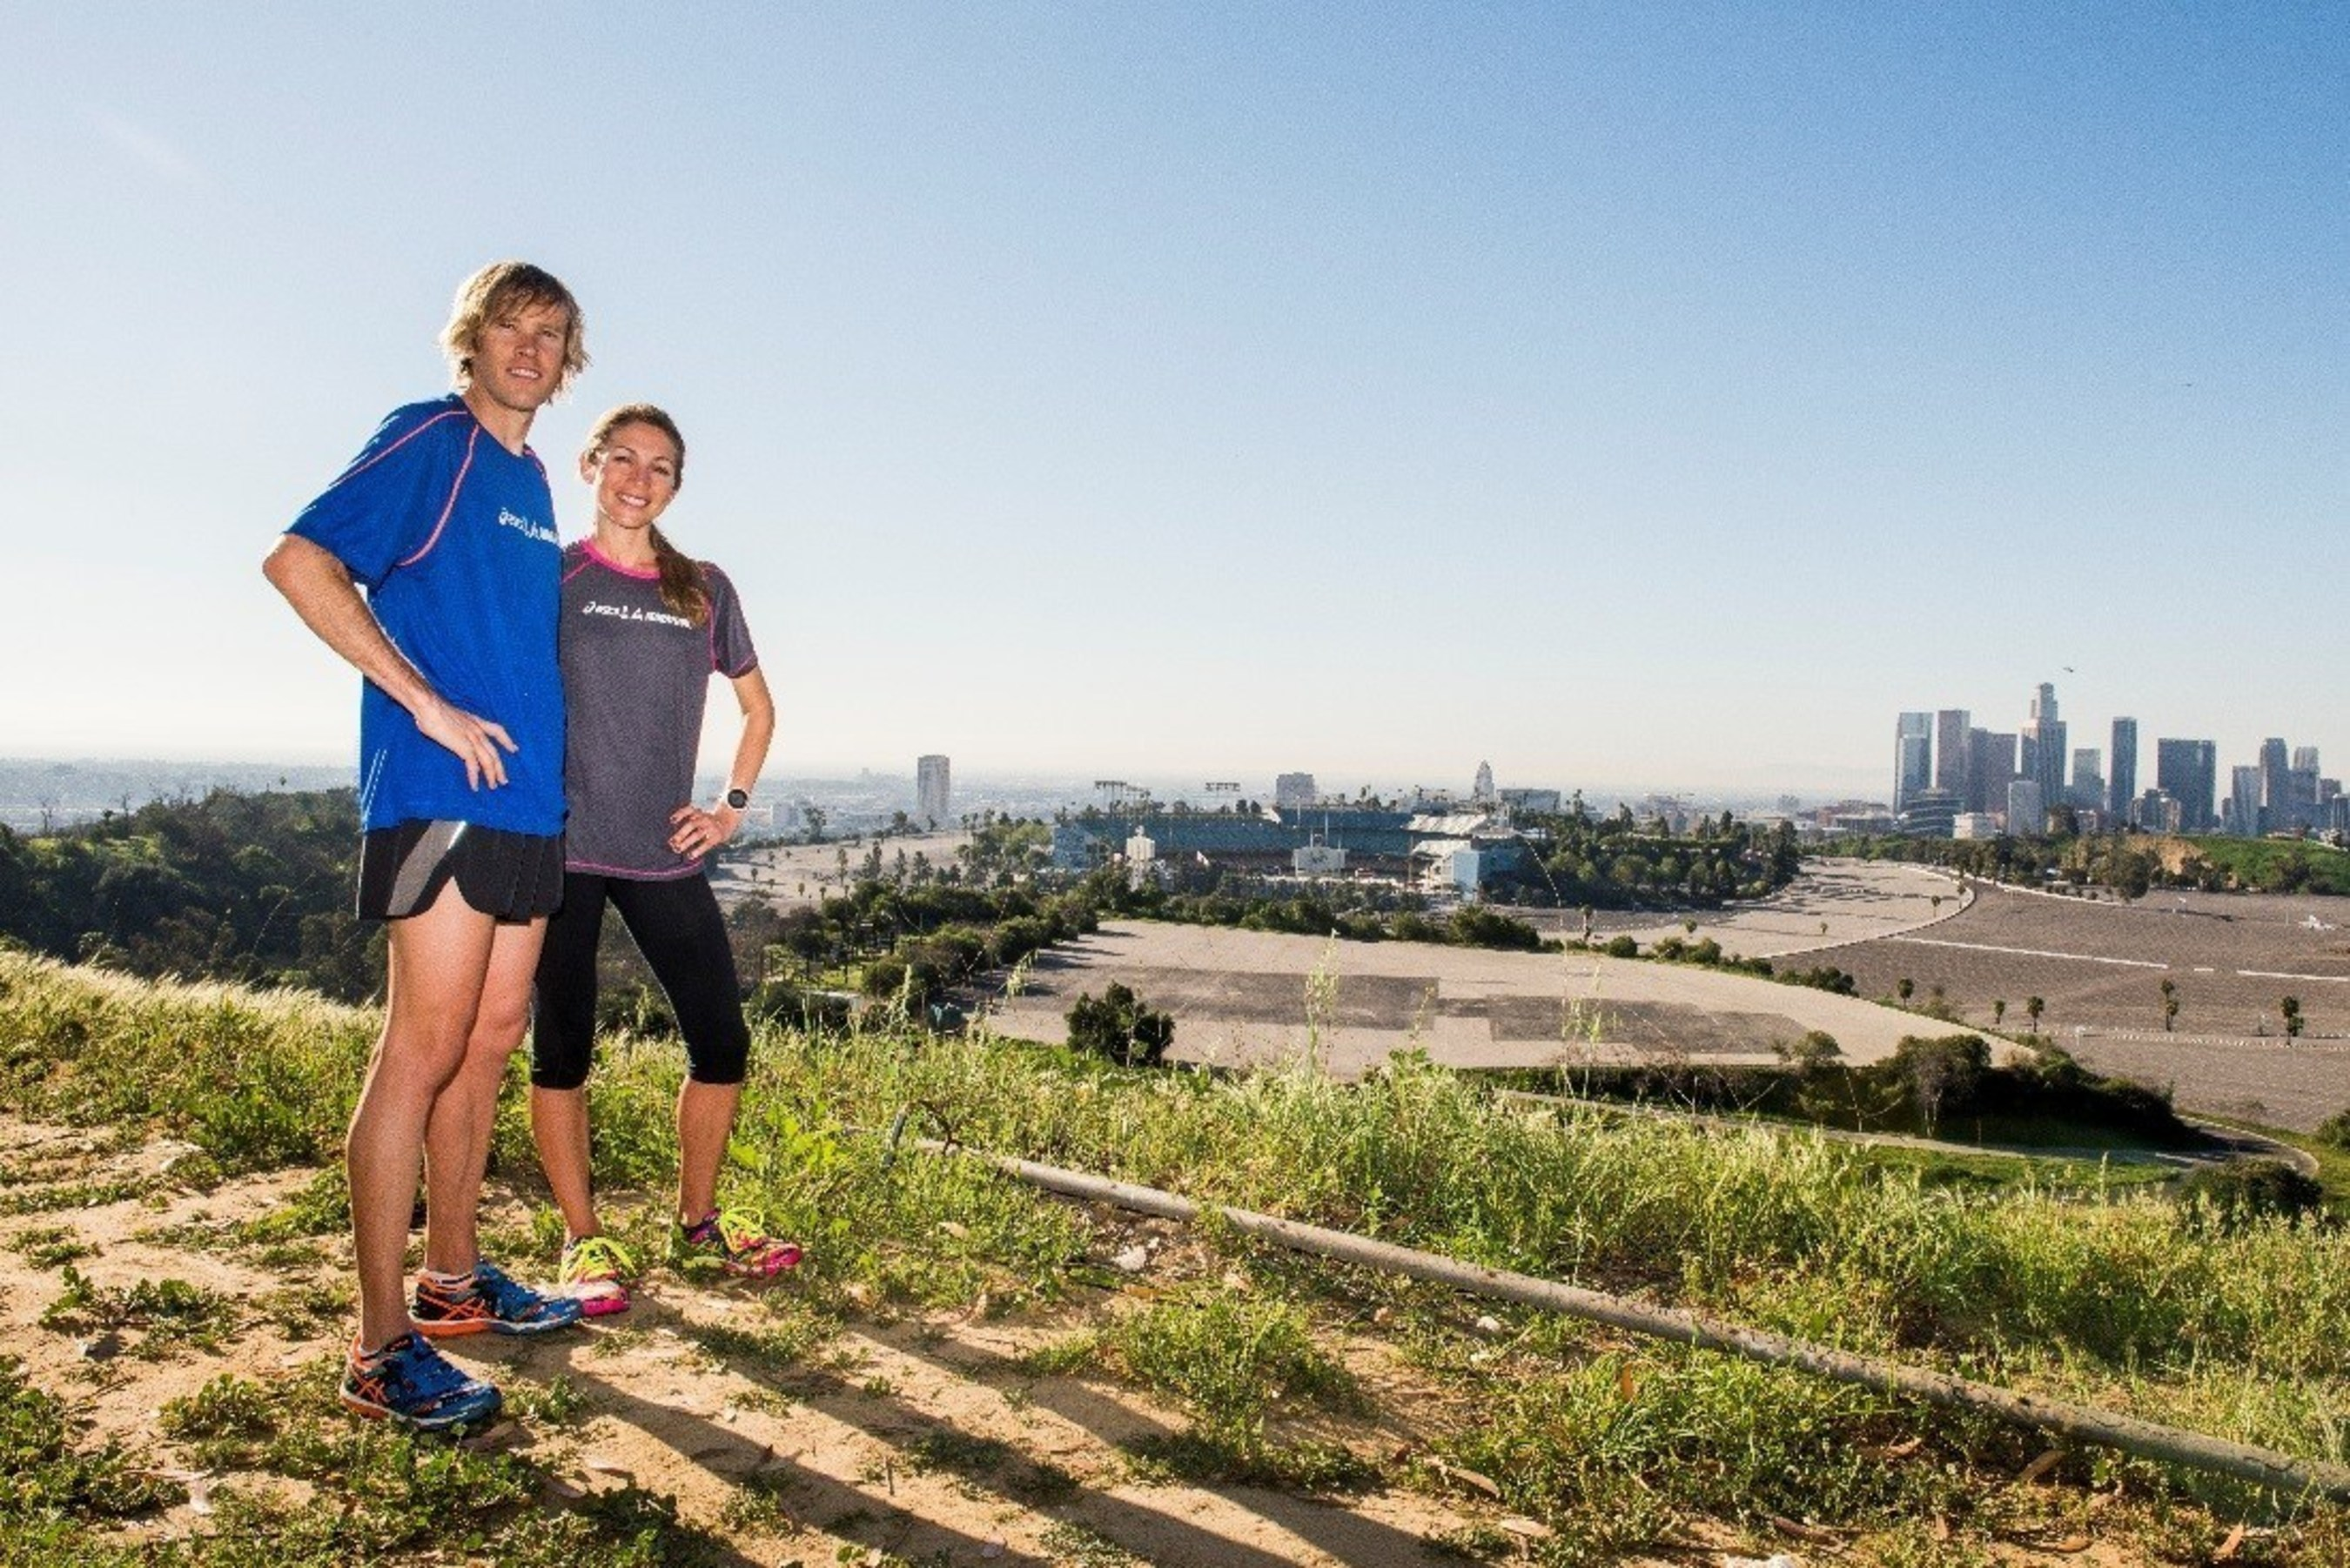 ASICS elite athletes Ryan and Sara Hall check out the ASICS LA Marathon course above Dodger Stadium in Los Angeles, California. (Photo credit:  Jonathan Moore/Getty Images for ASICS)